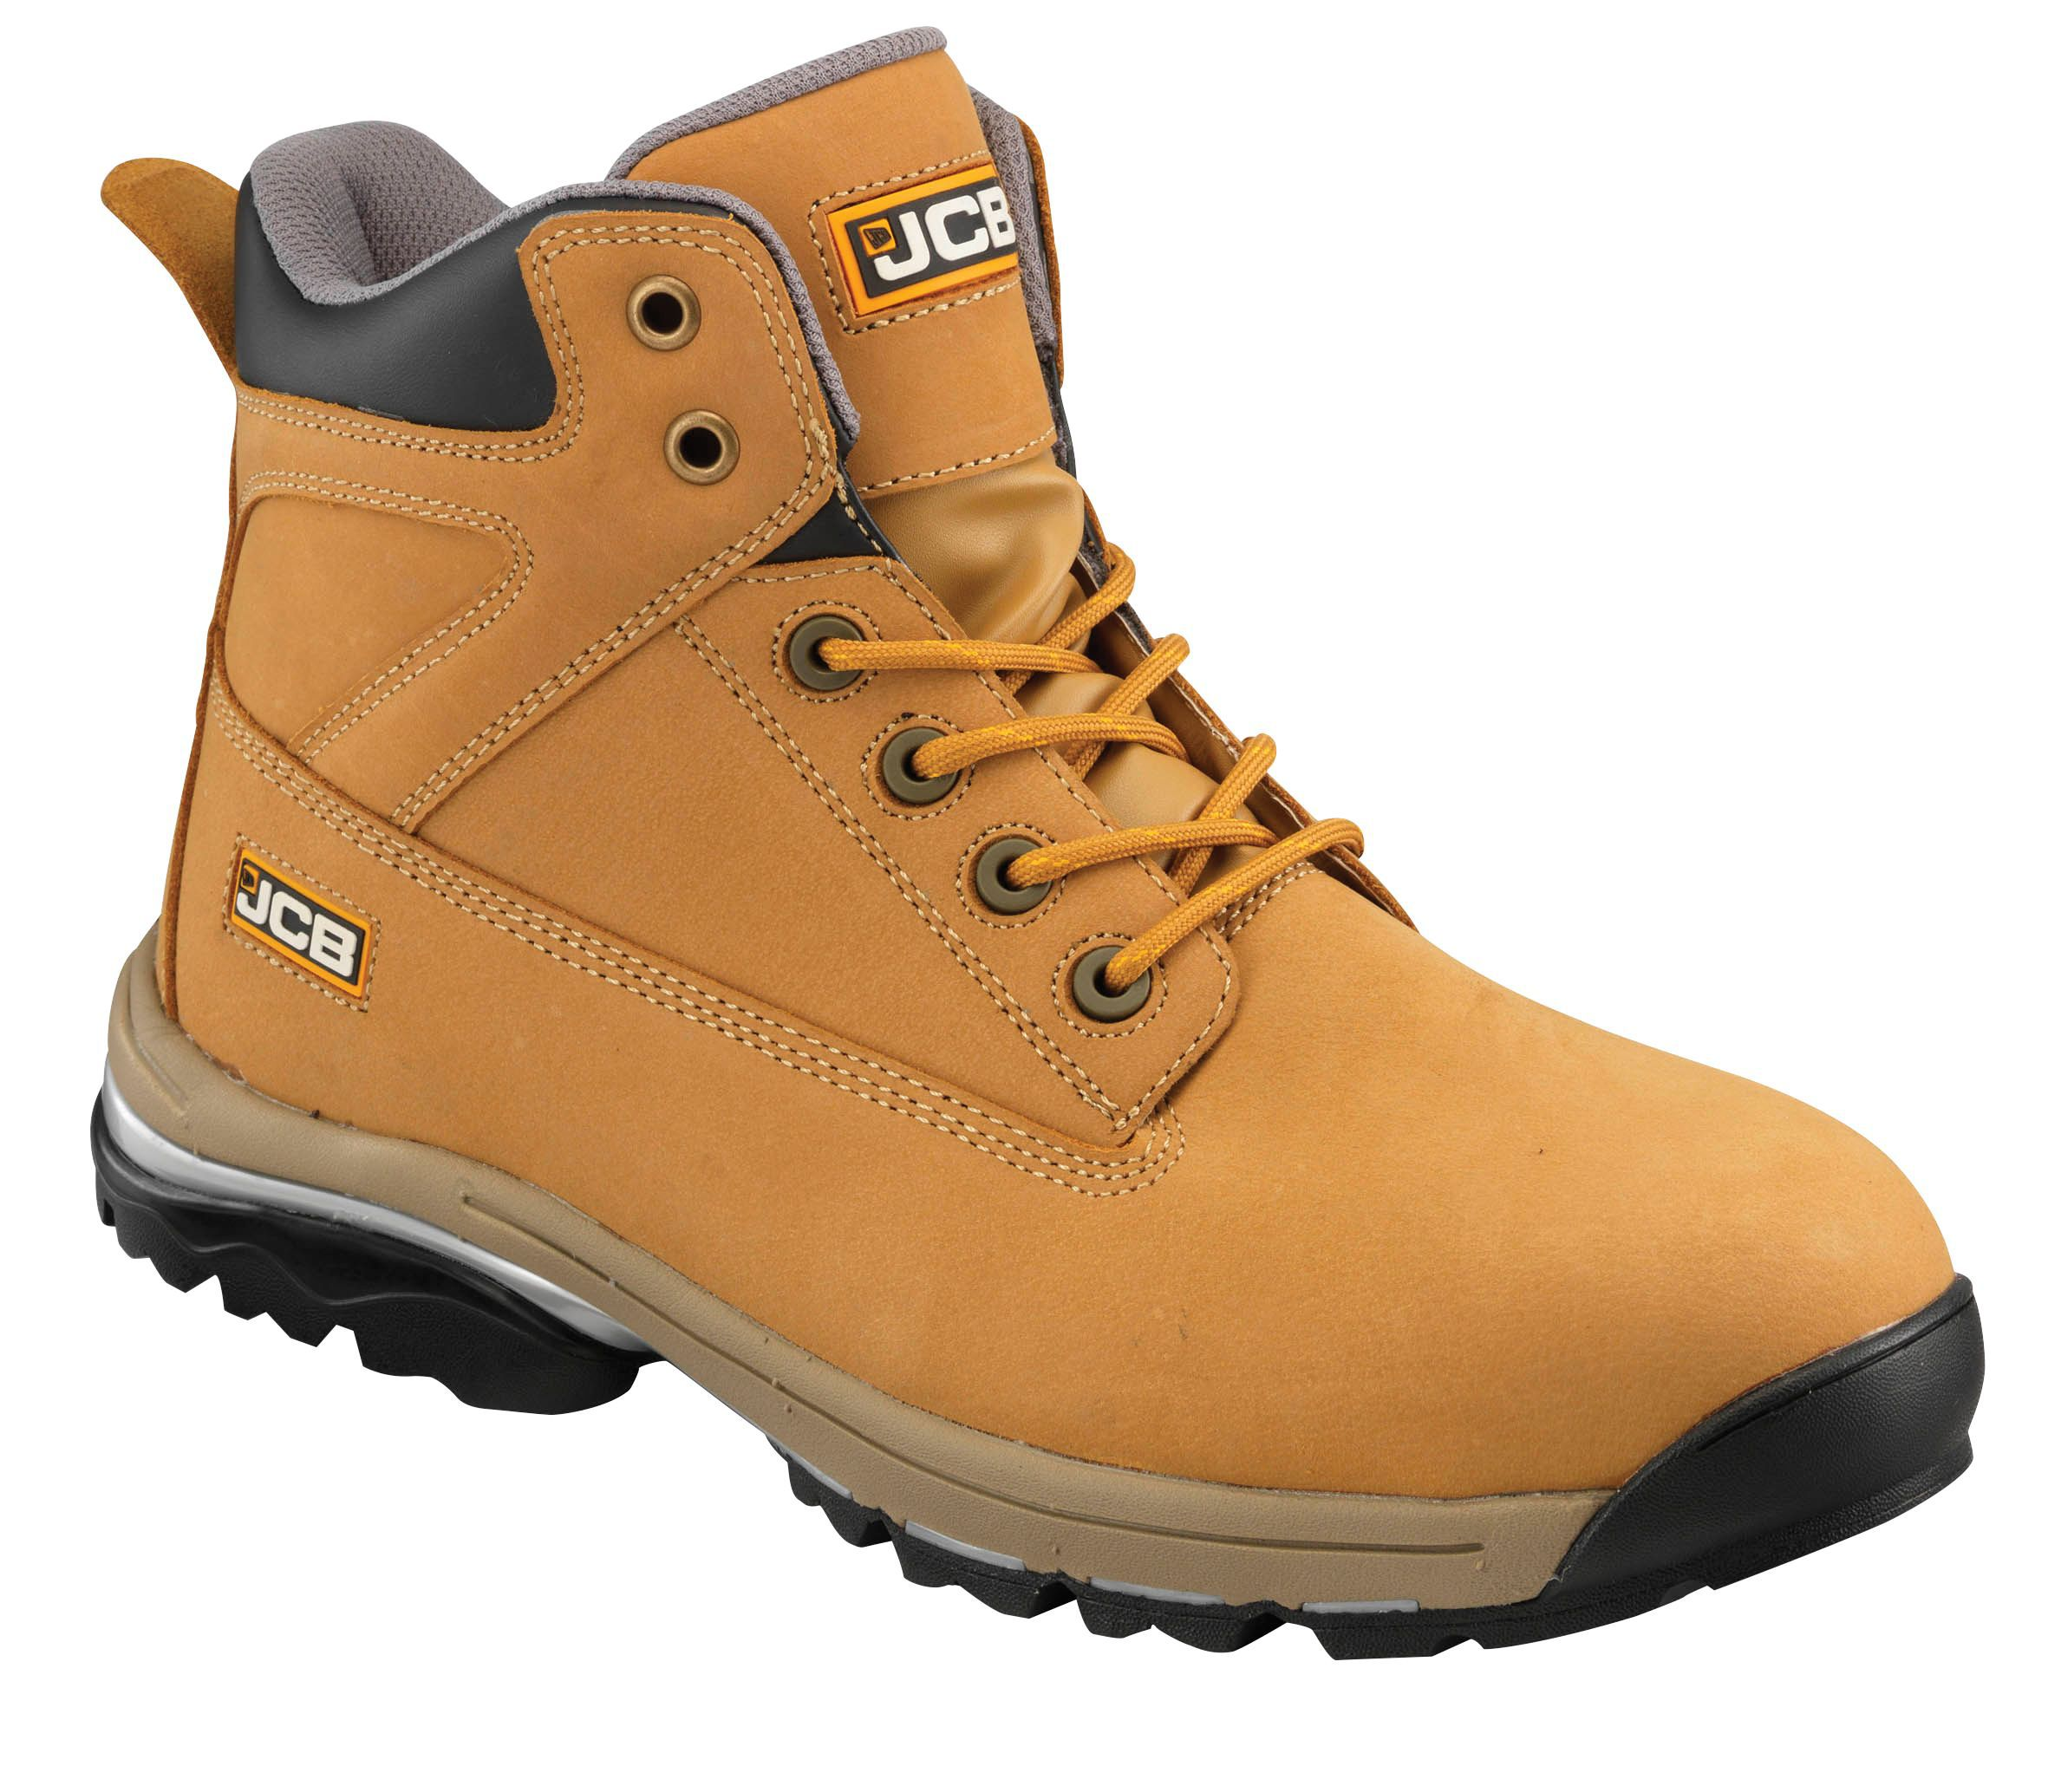 Jcb Honey Workmax Boots, Size 11